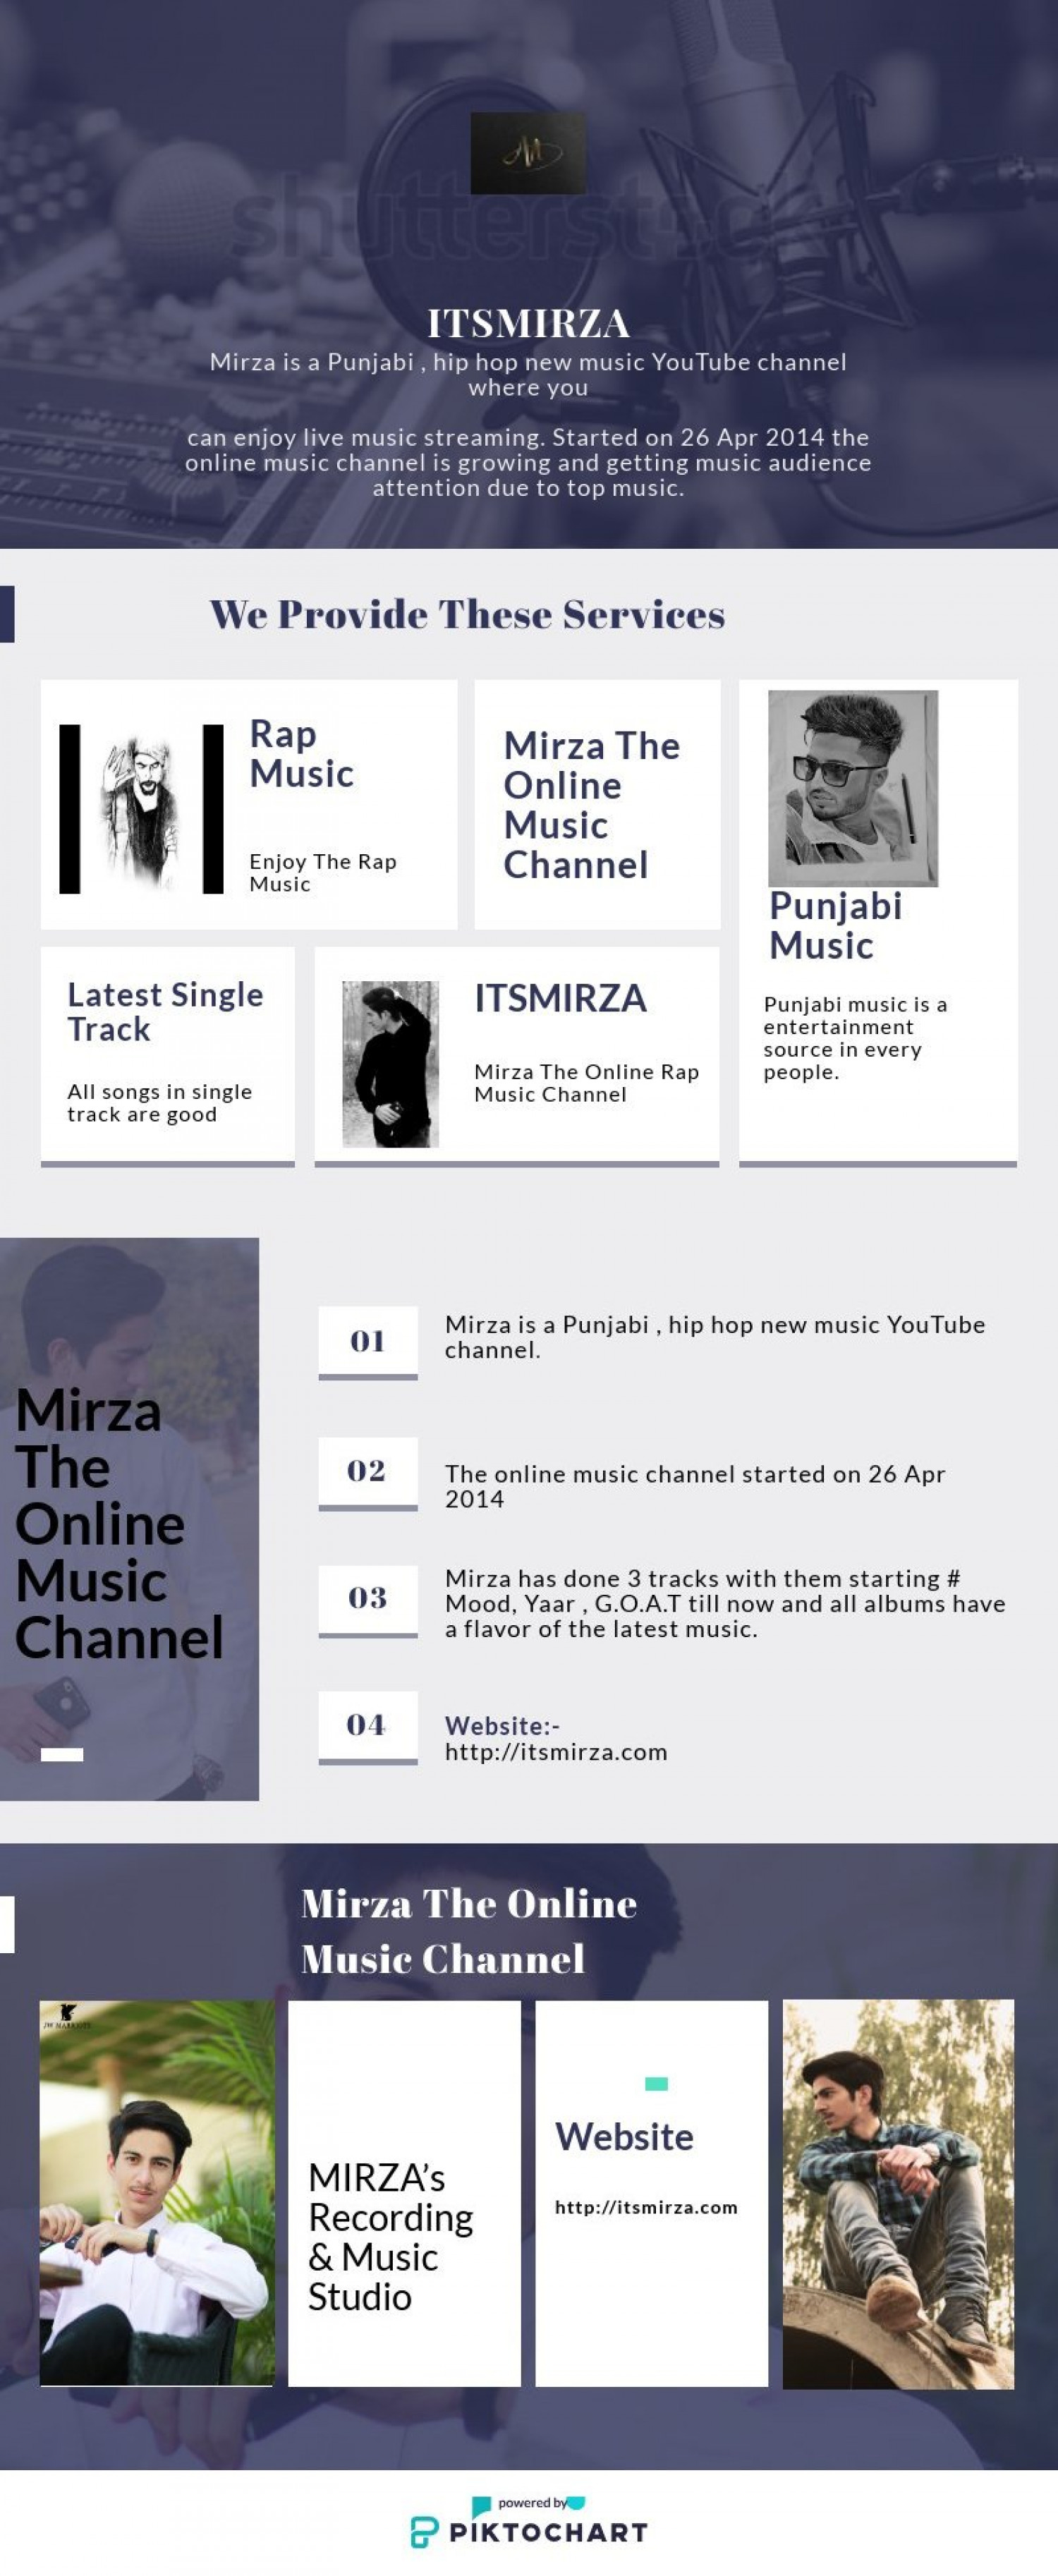 Punjabi Hip Hop Beat Song At Mirza. Listen and Feel The Beat Infographic